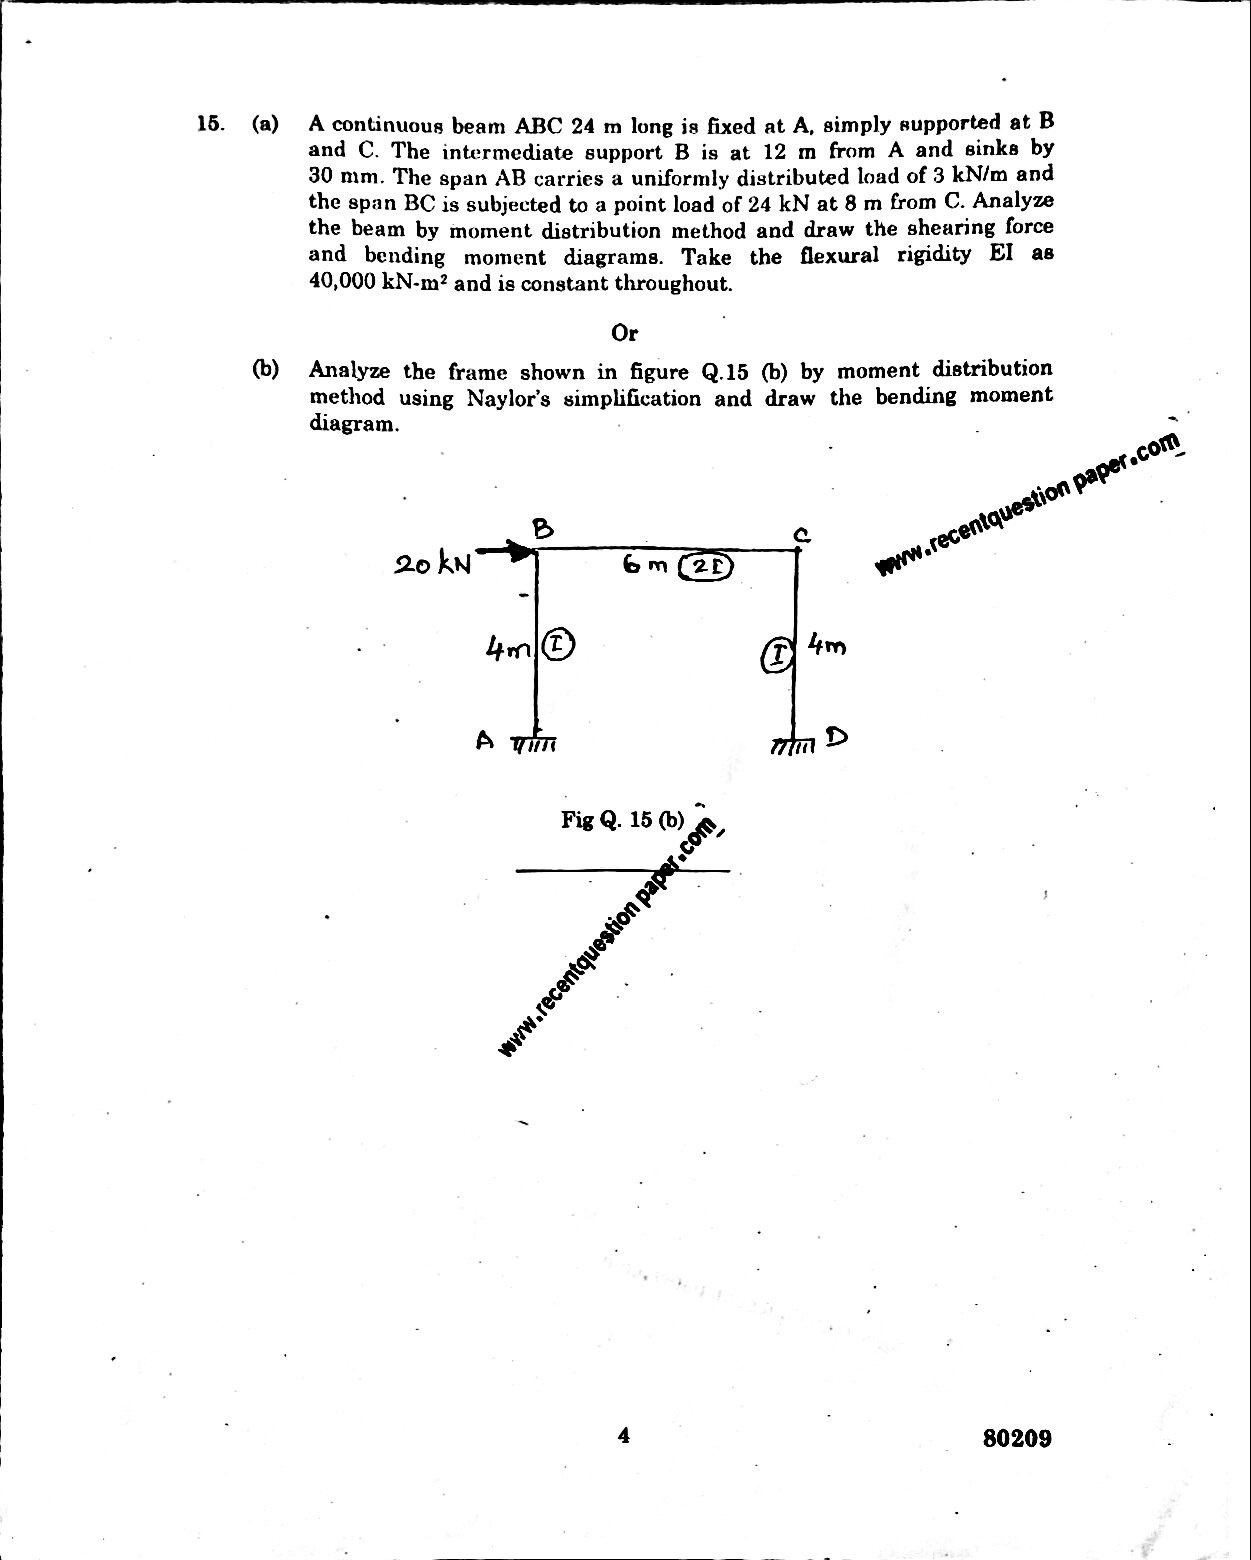 Ce6501 Structural Analysis I 3 Recent Question Paper Frame Bending Moment Diagram